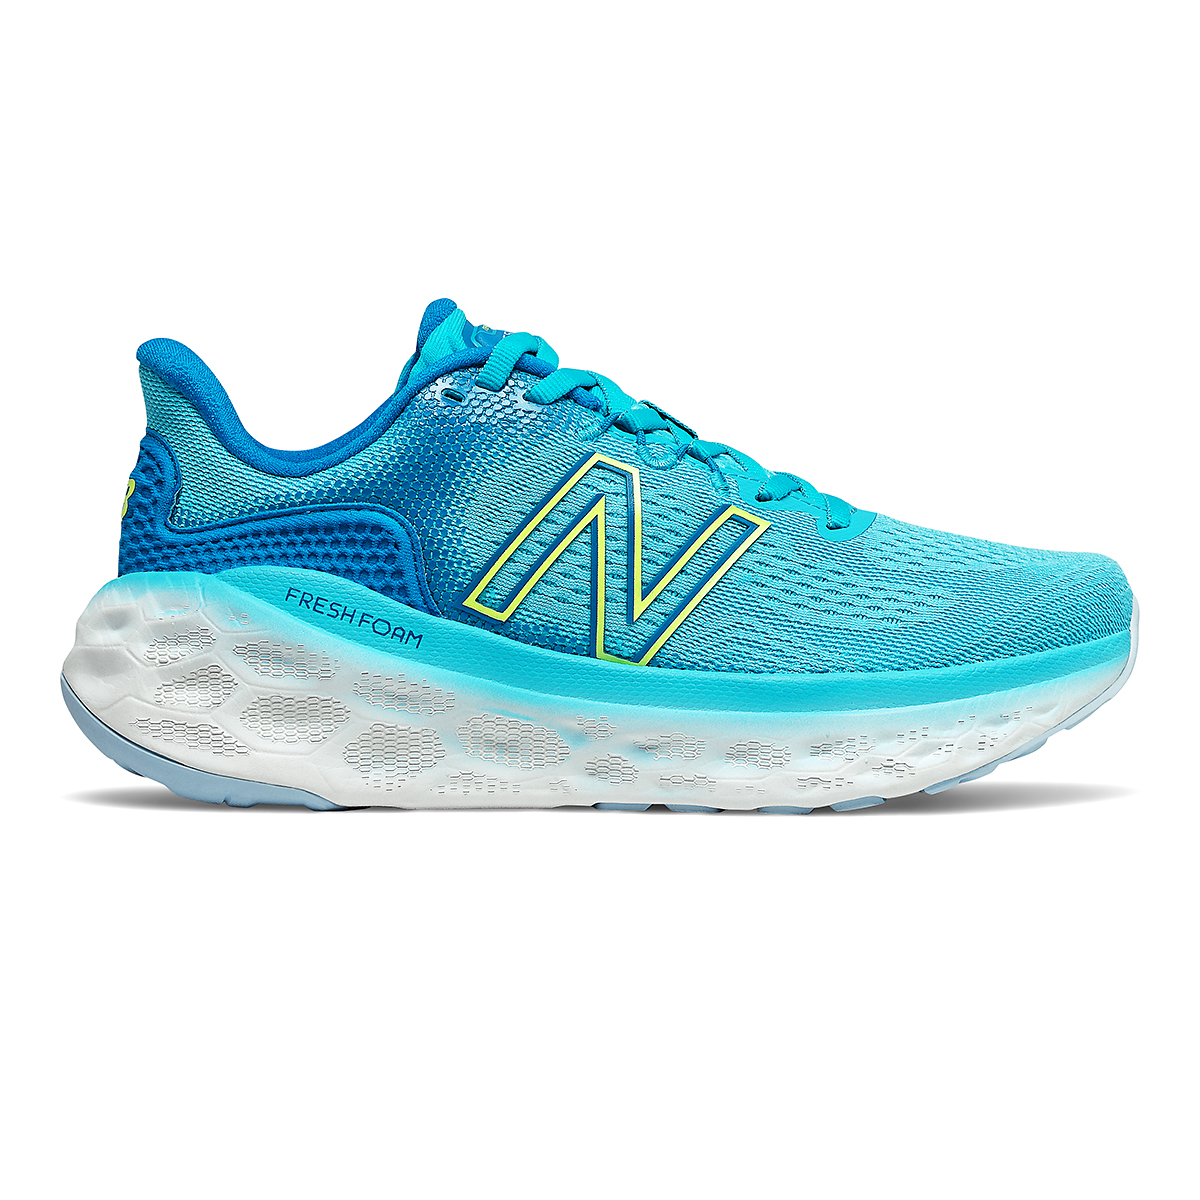 Women's New Balance Fresh Foam More V3 Running Shoe - Color: Virtual Sky/Bleached Lime Glo - Size: 5 - Width: Extra Wide, Virtual Sky/Bleached Lime Glo, large, image 1